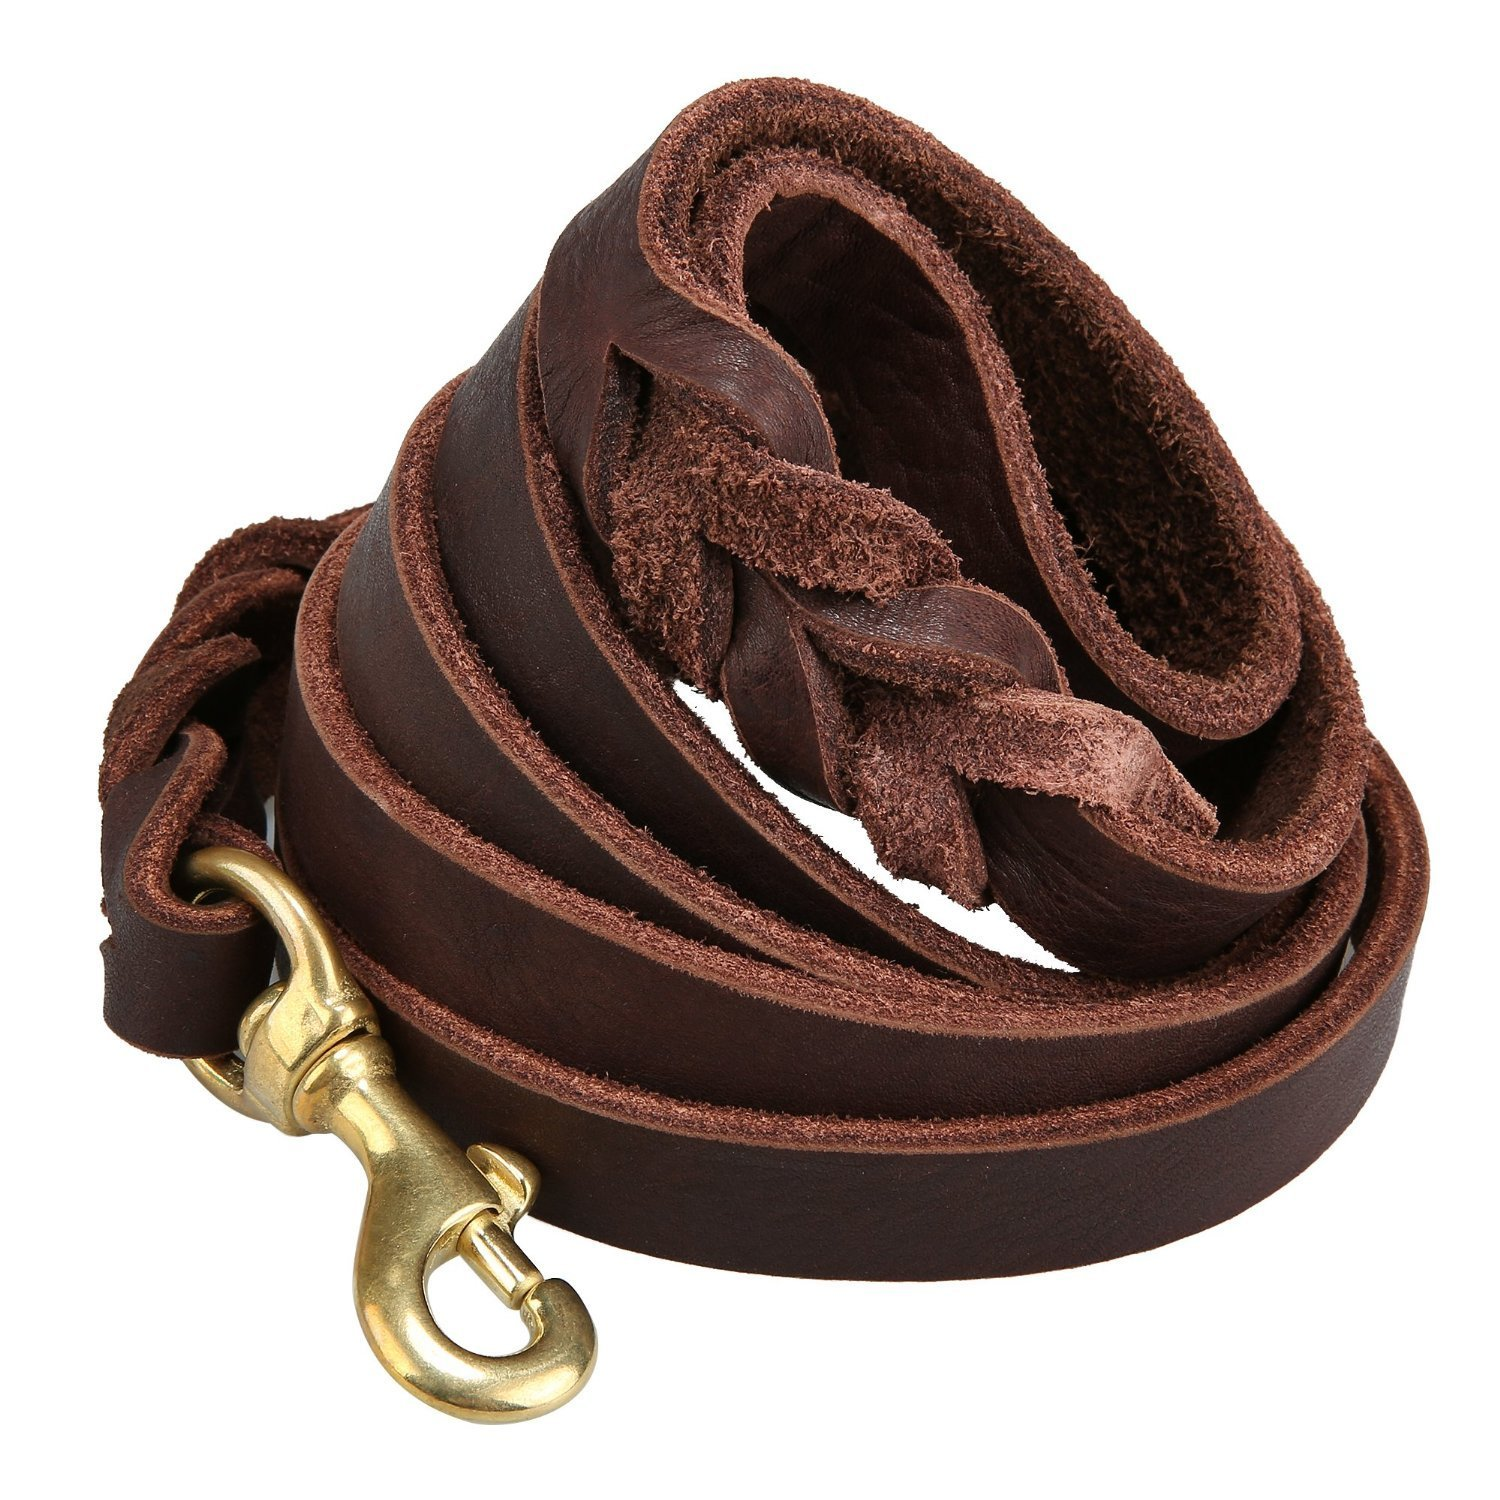 Dogs Kingdom Genuine Leather Braided Brown Dog Leash 4Ft/5Ft/7Ft/8.5Ft Best Lead For Large and Medium Dogs Training Walking Brown/Gold hook 5/7''5ft